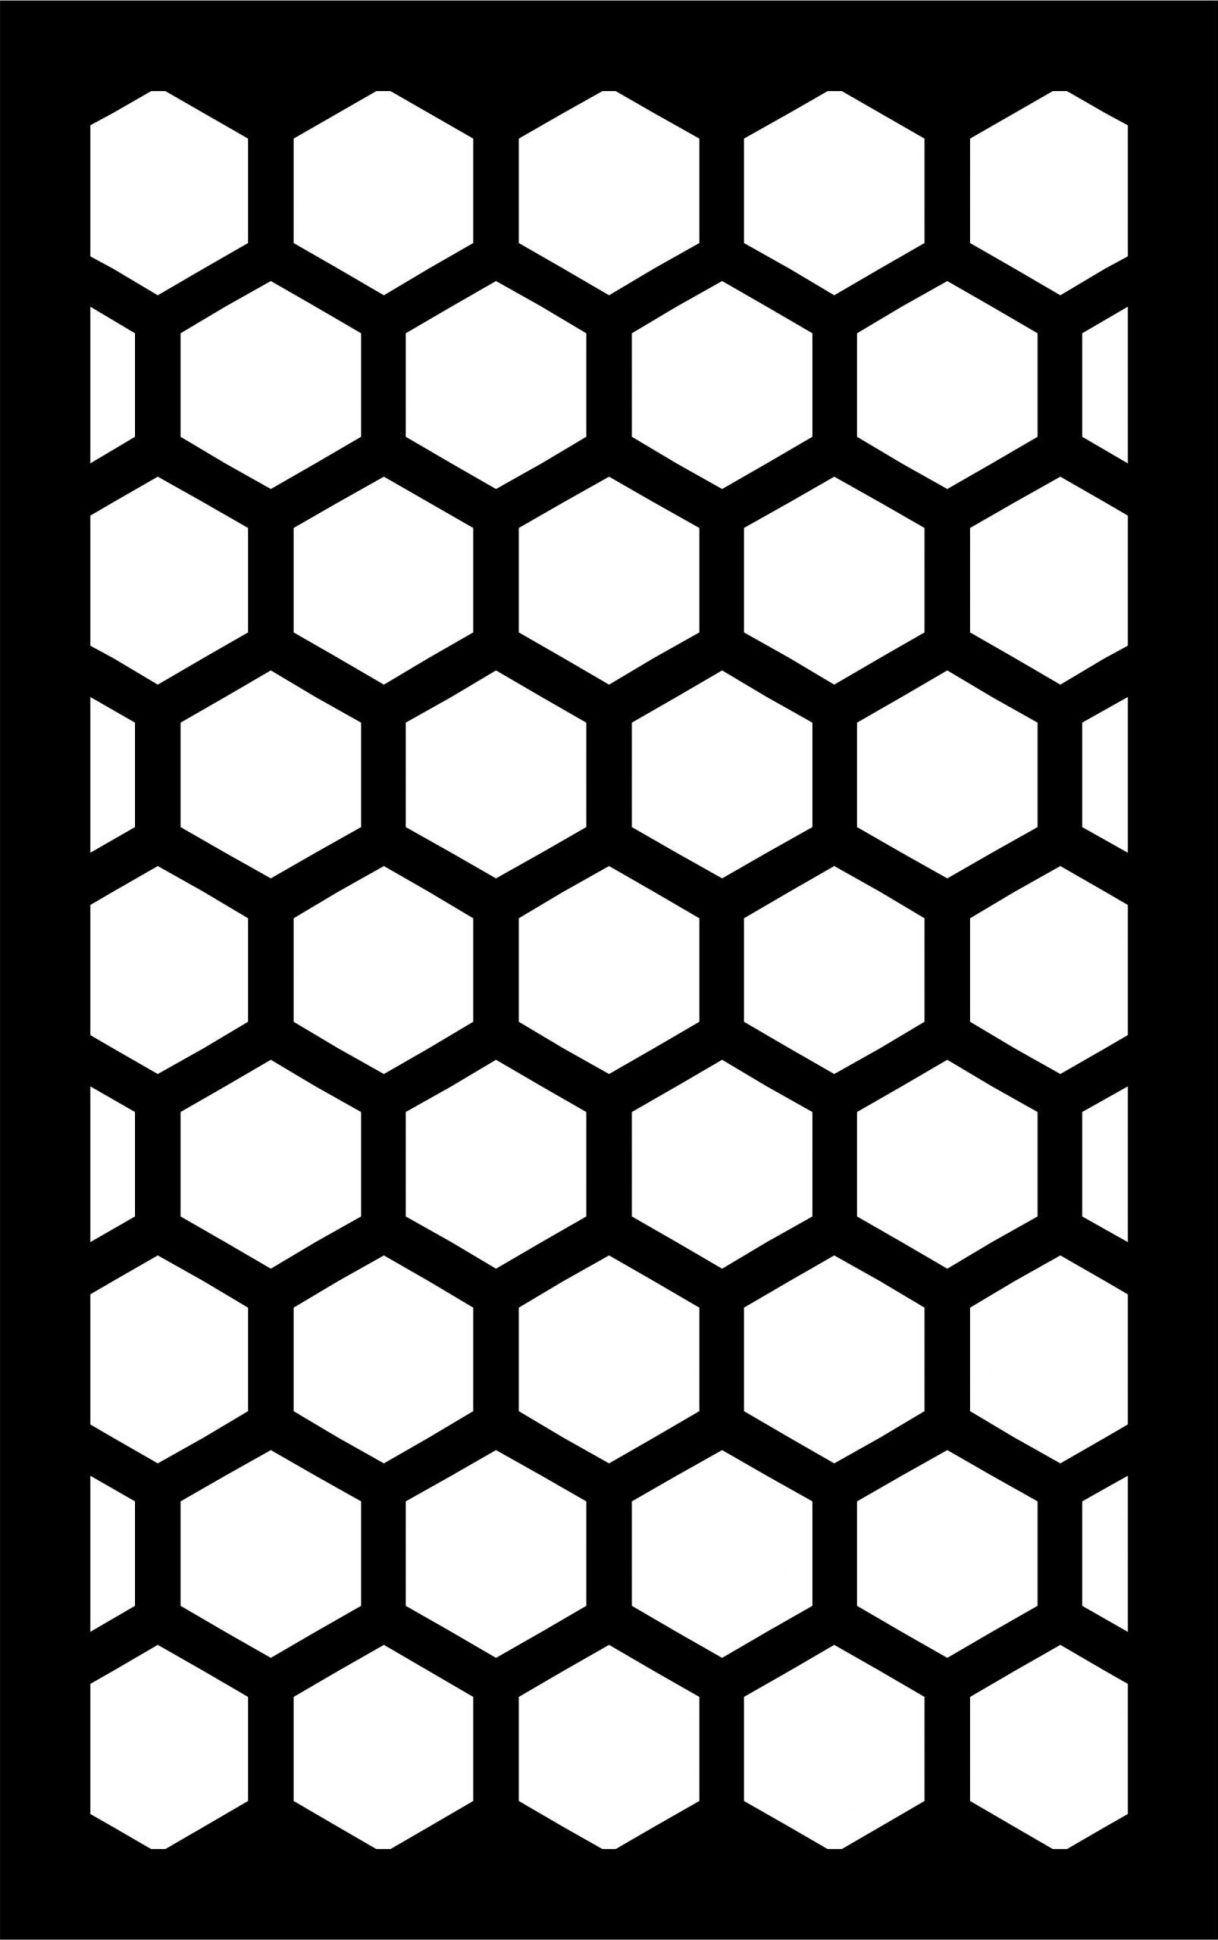 Decorative Screen Patterns For Laser Cutting 22 Free DXF File